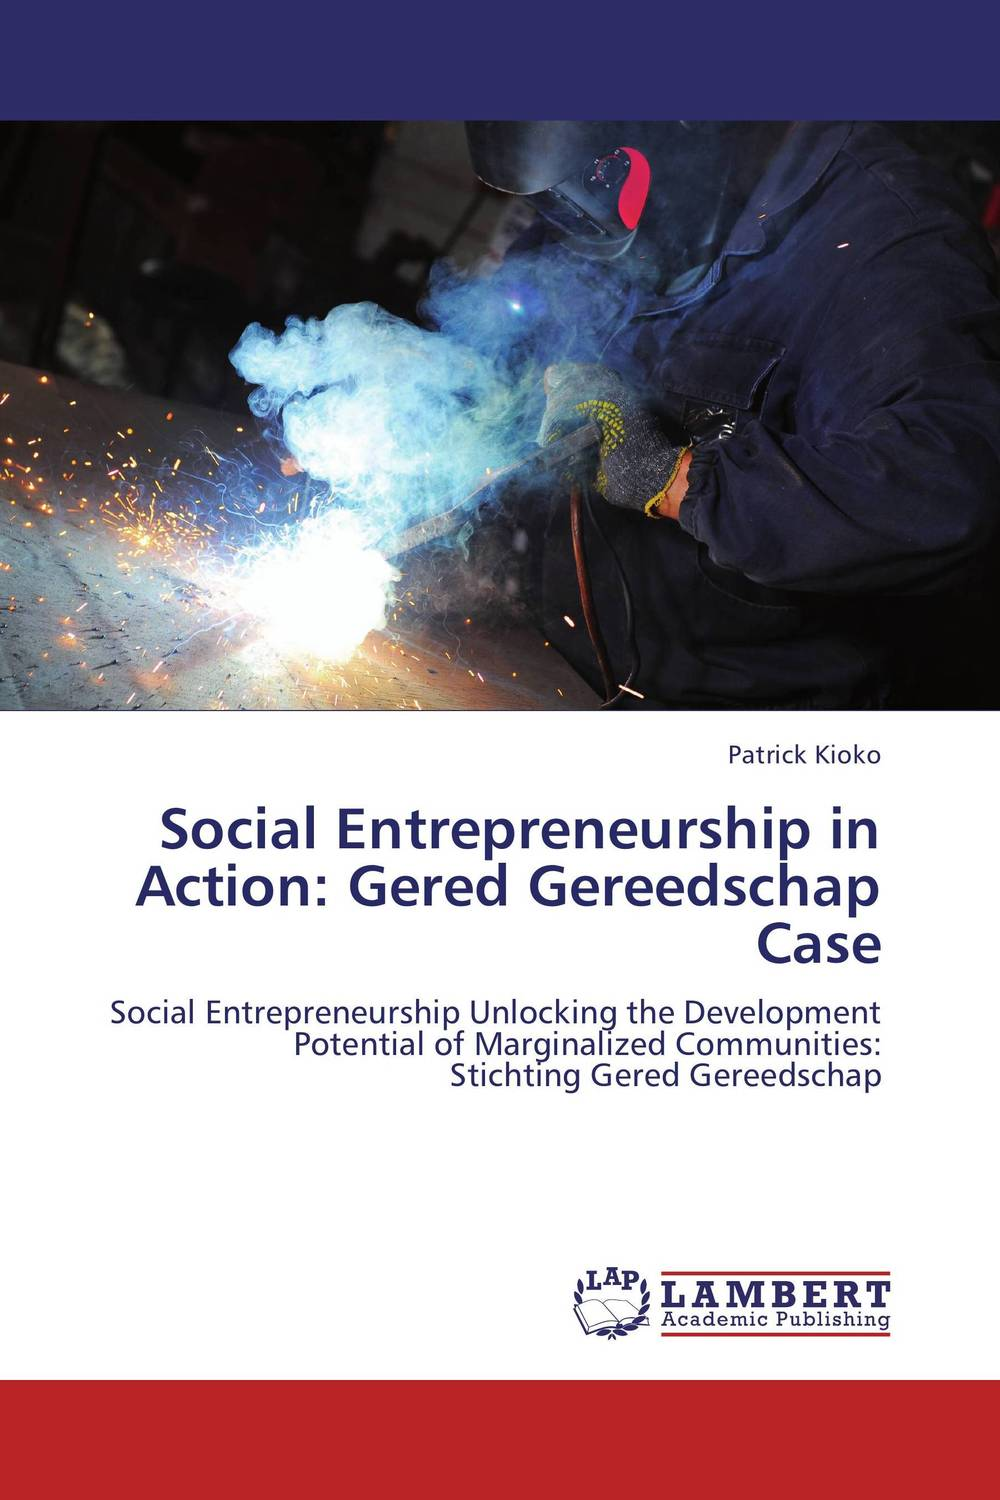 Social Entrepreneurship in Action: Gered Gereedschap Case marc lane j the mission driven venture business solutions to the world s most vexing social problems